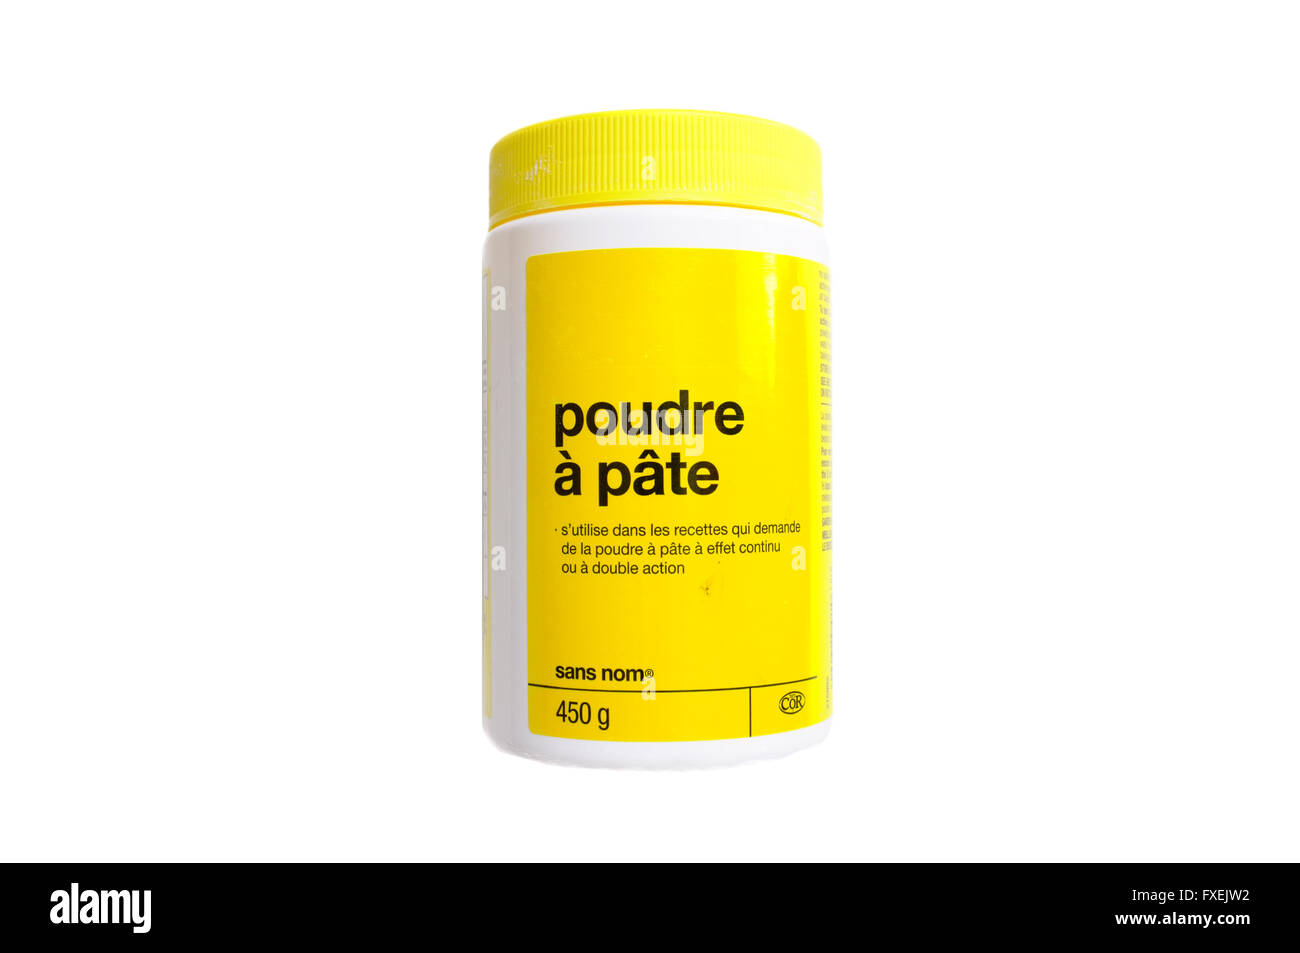 A French labeled bottle of baking powder photographed against a white background. - Stock Image